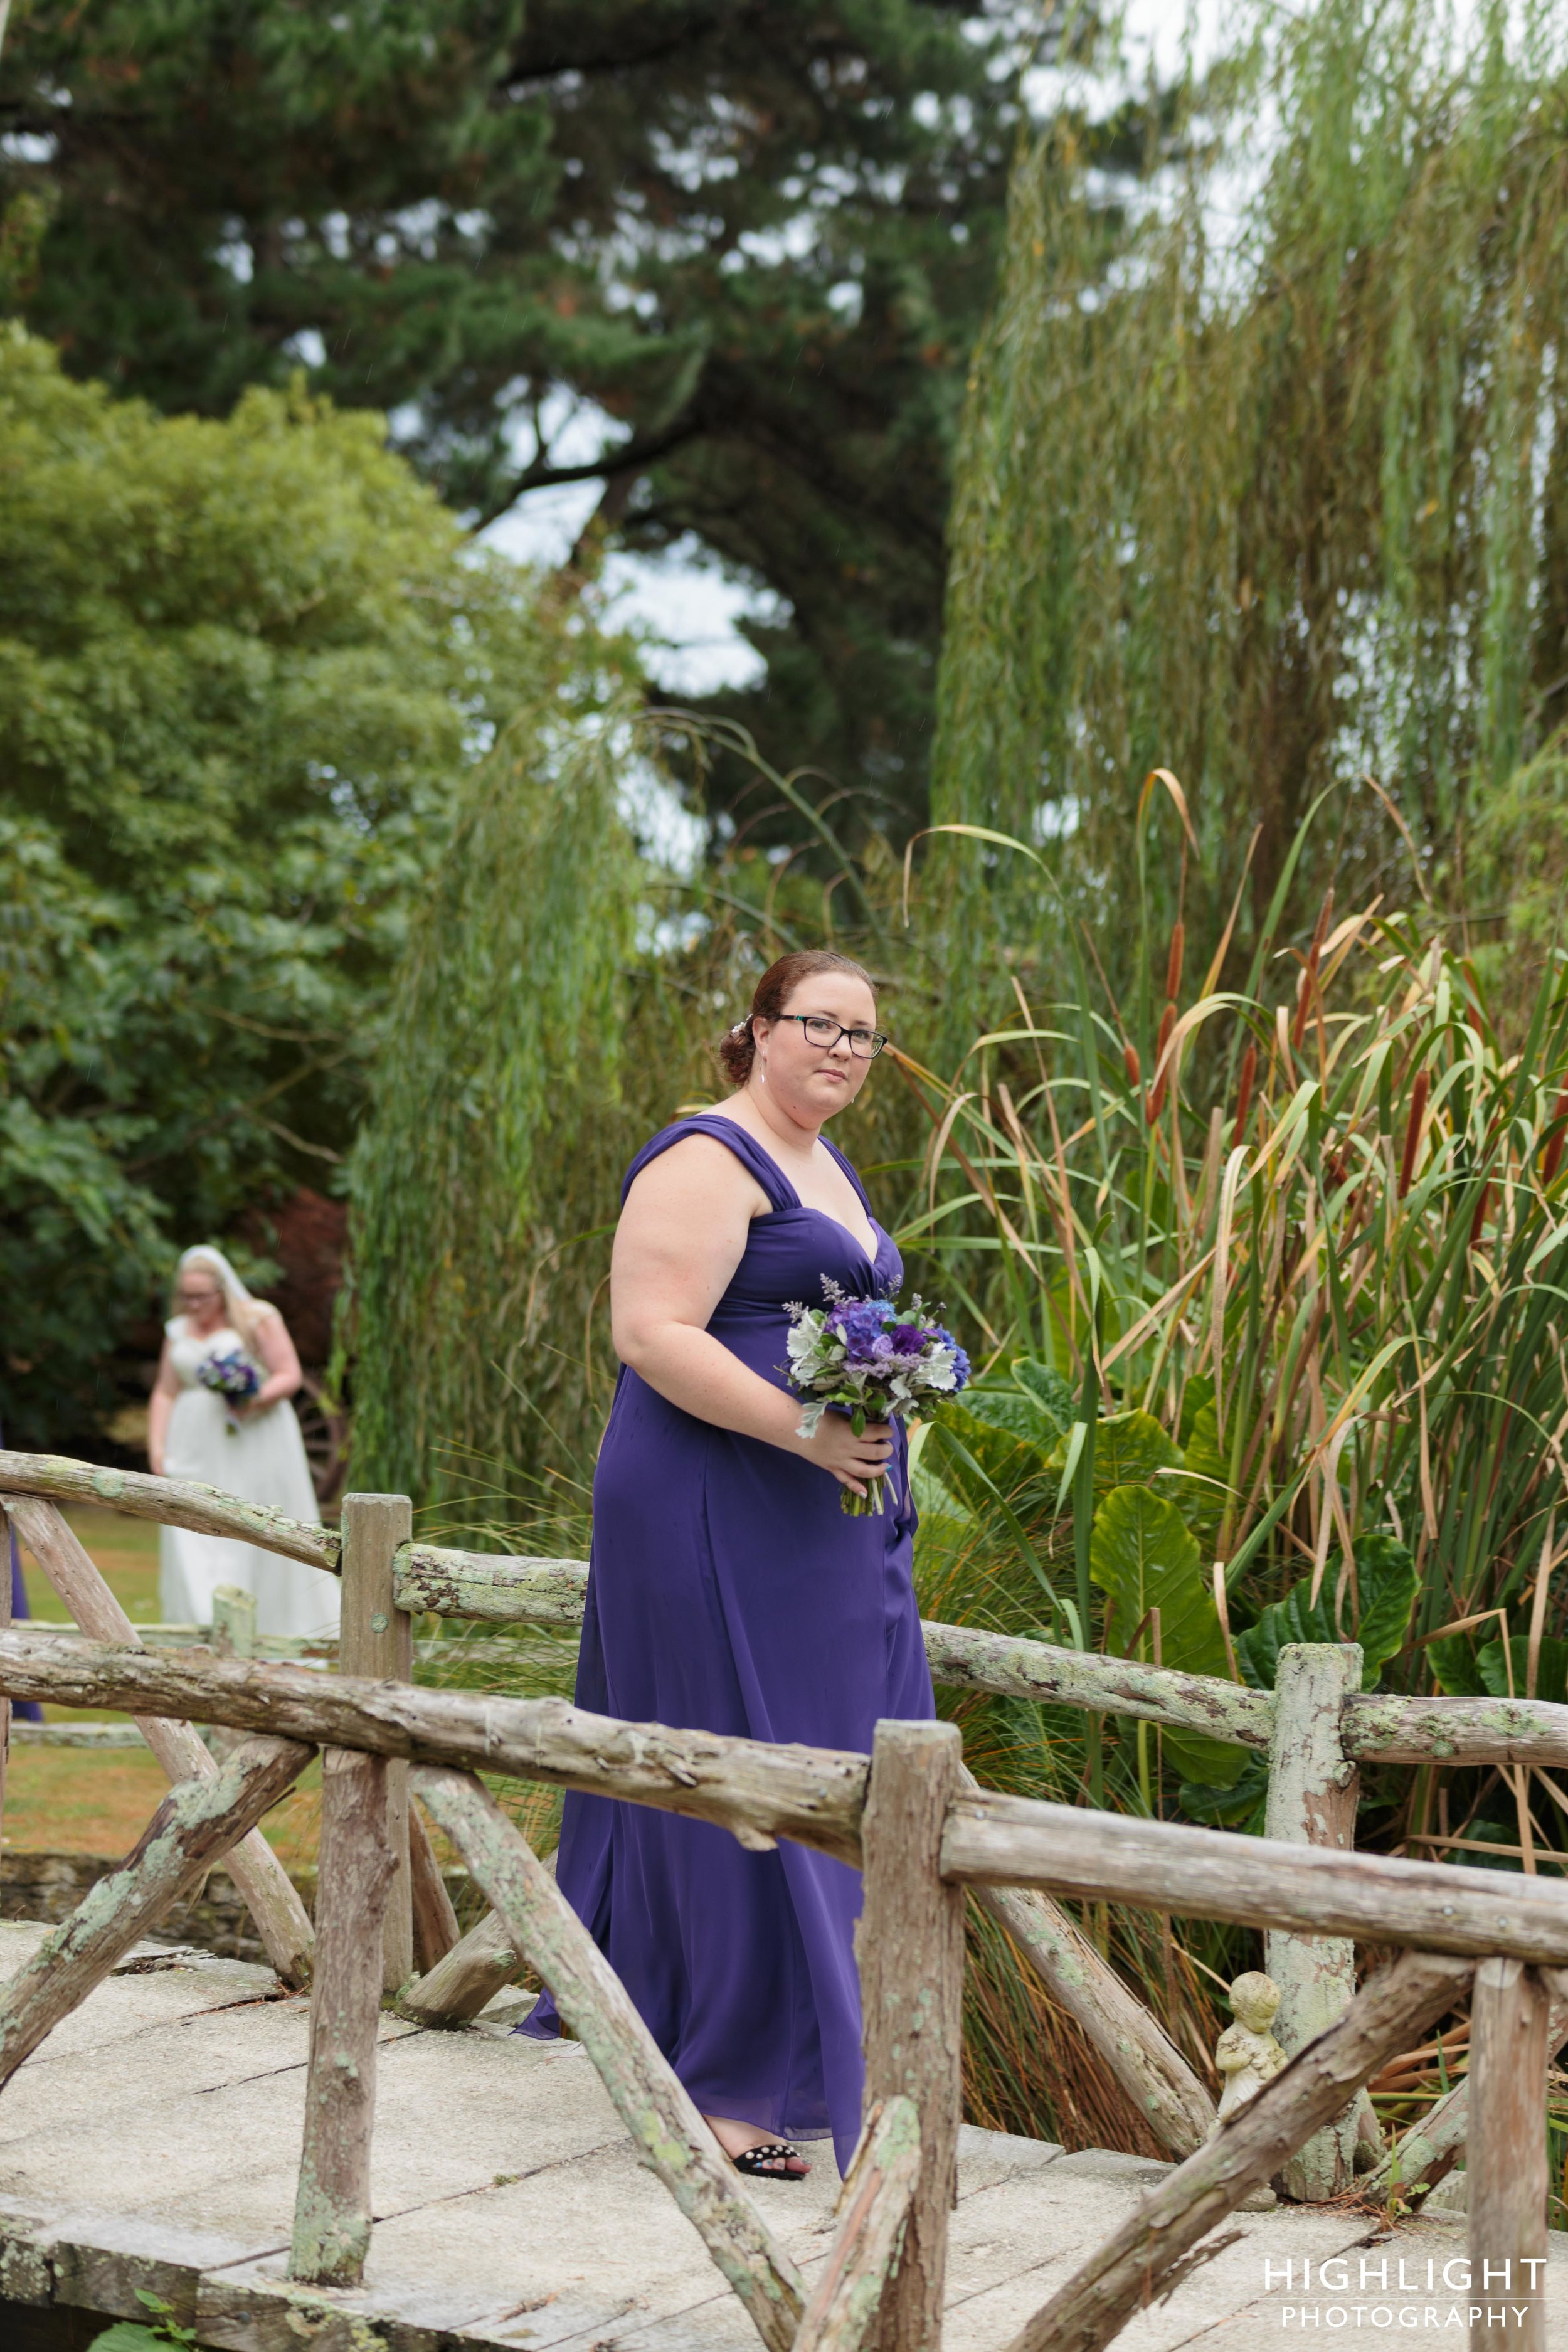 highlight-wedding-photography-new-zealand-palmerston-north-40.jpg